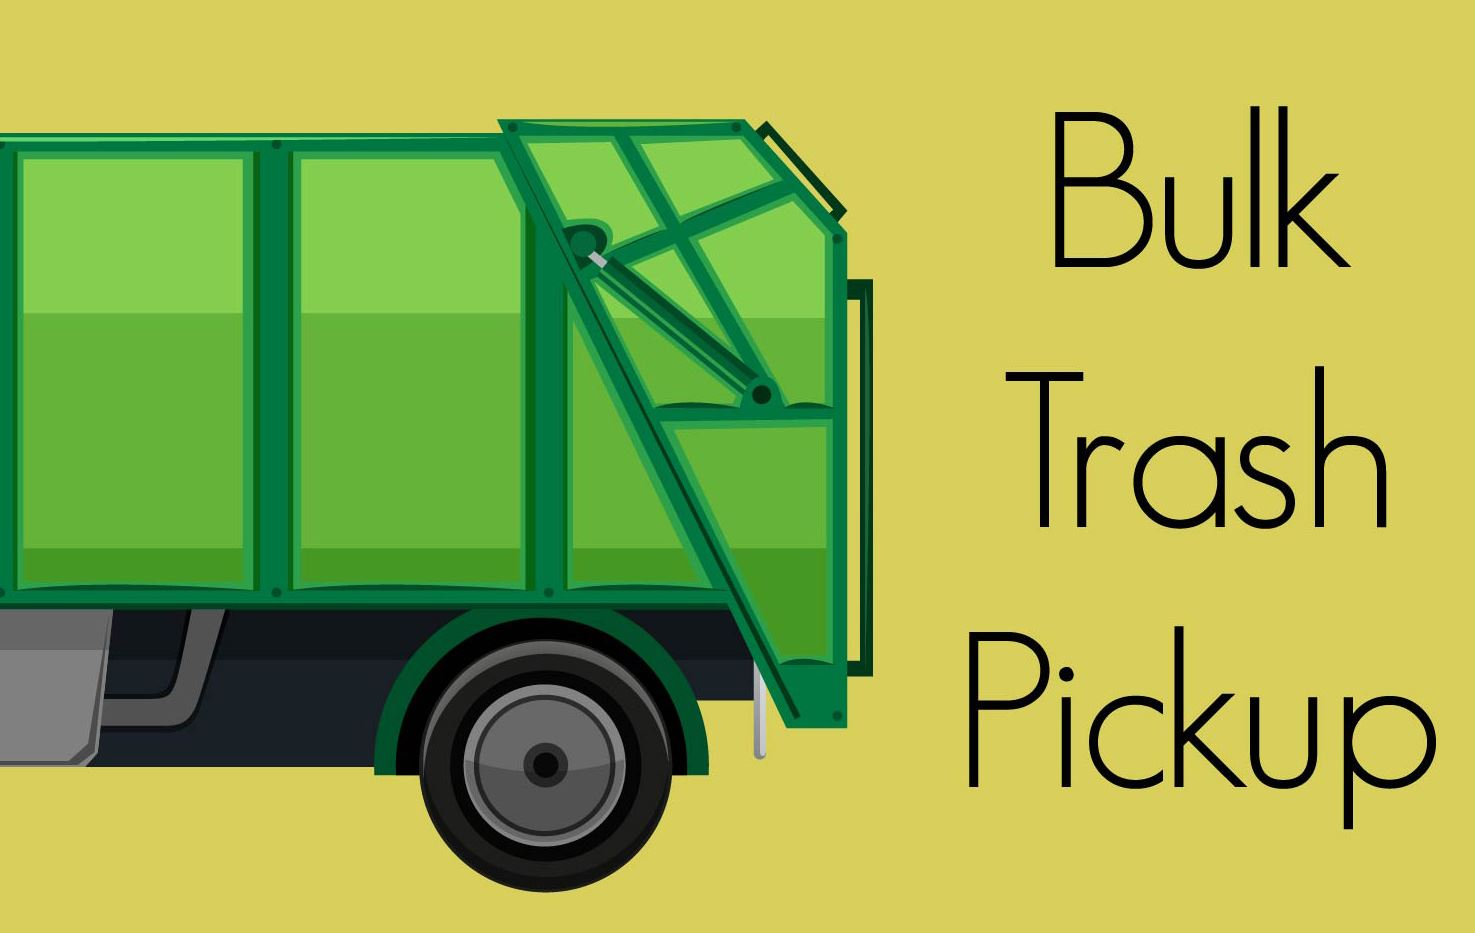 News Section Template - 2018 Bulk Trash Pickup